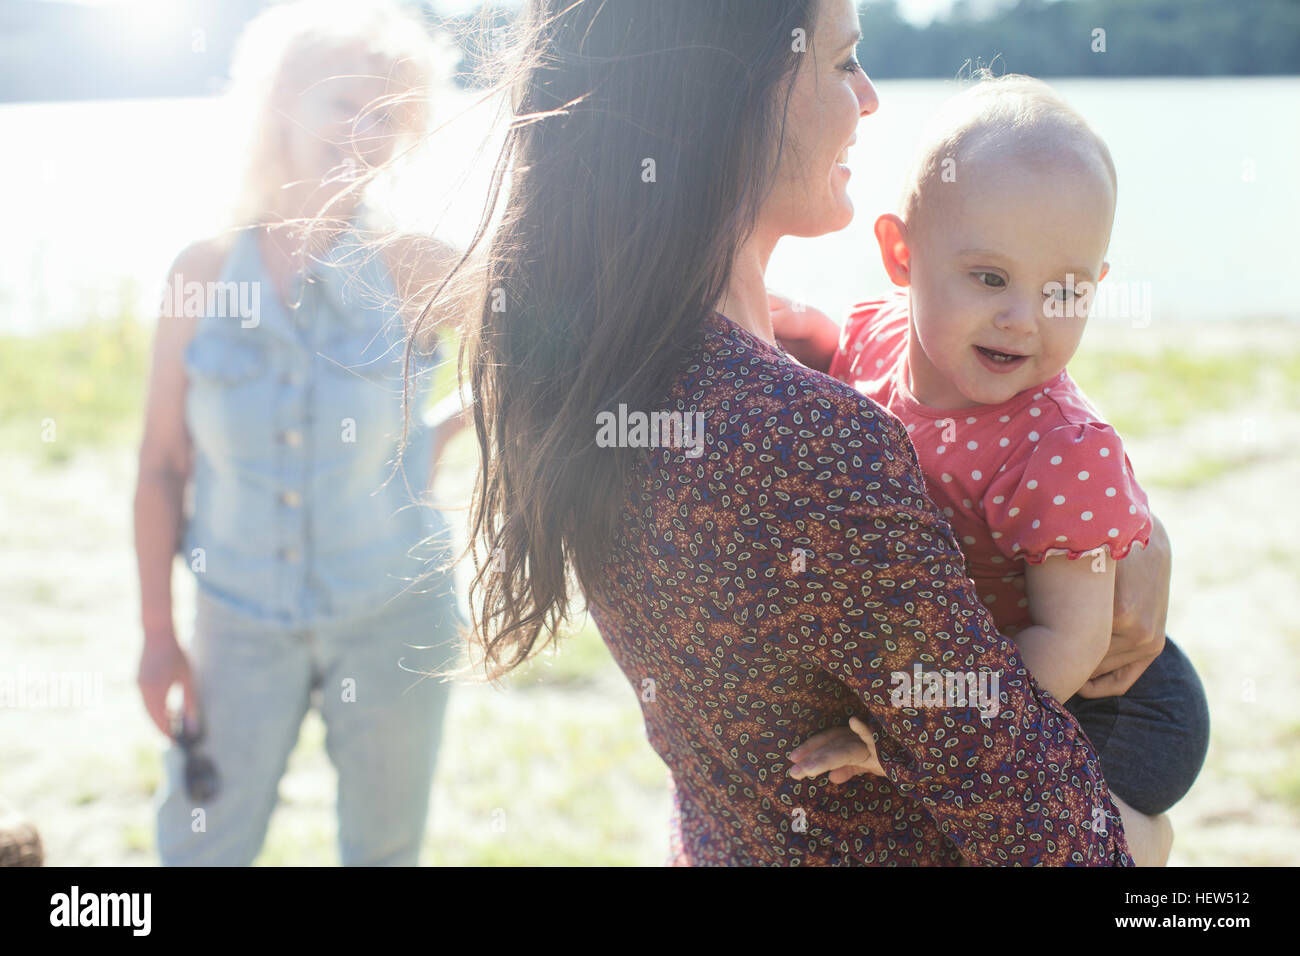 Senior woman with daughter and granddaughter at riverside - Stock Image